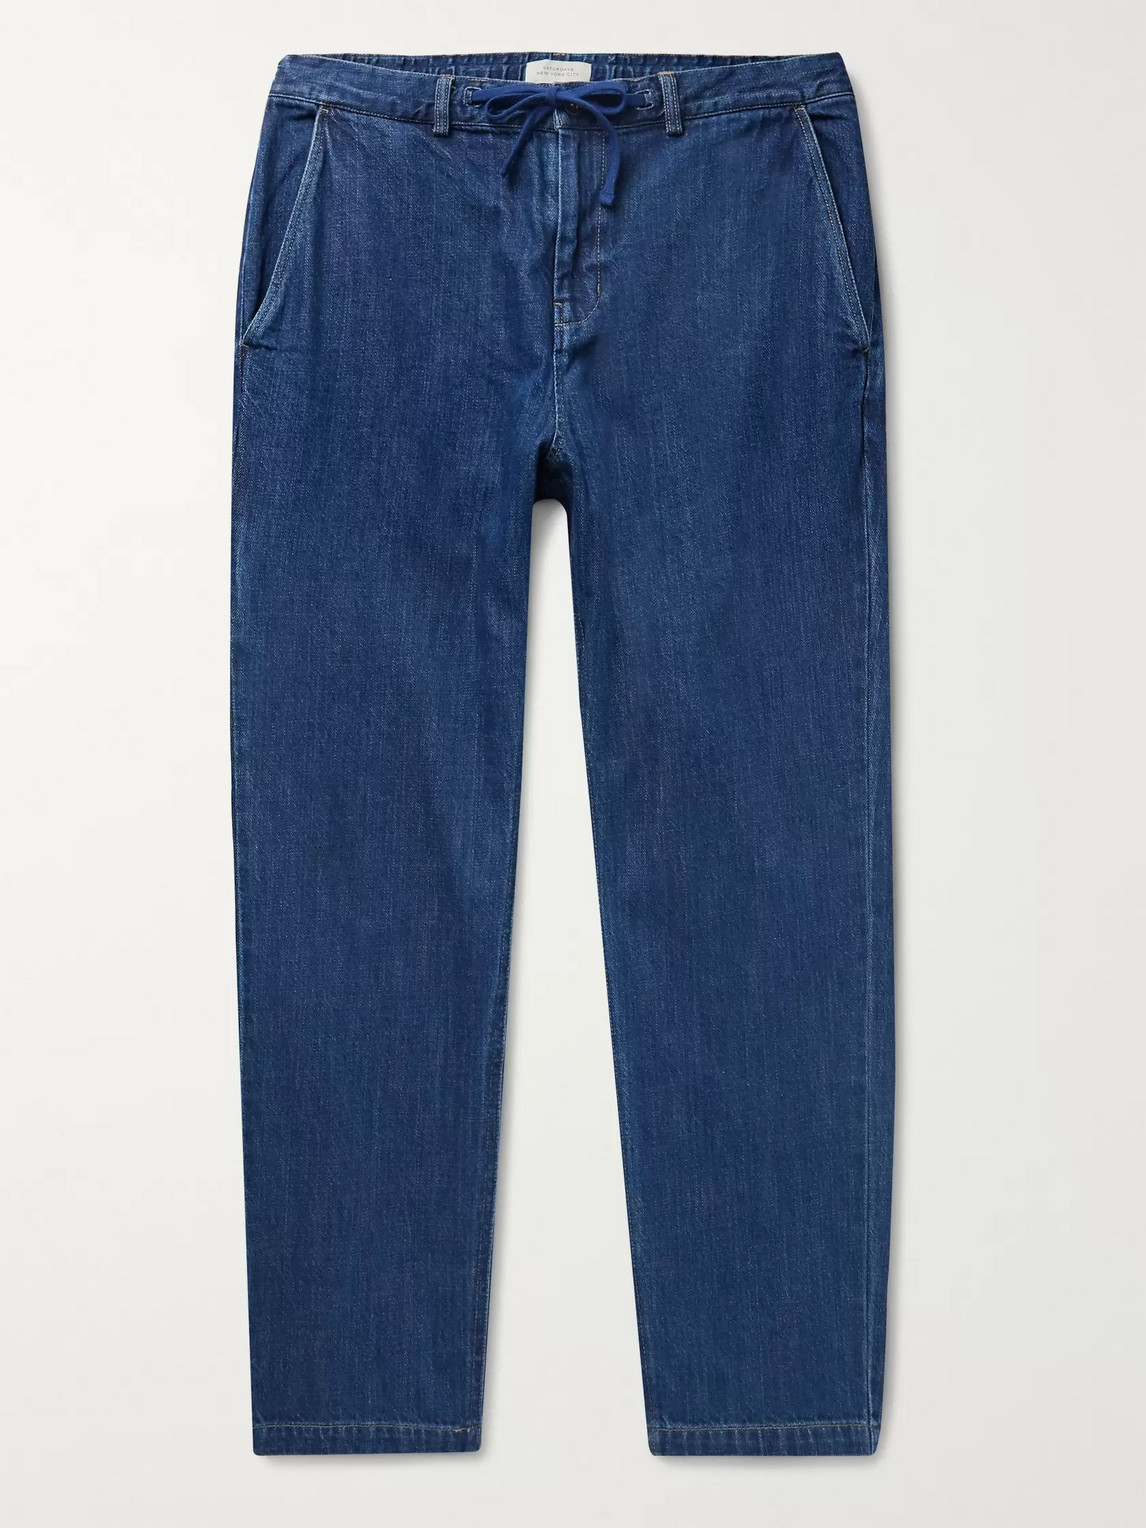 Saturdays Surf Nyc SHAW TAPERED INDIGO-DYED DENIM DRAWSTRING TROUSERS